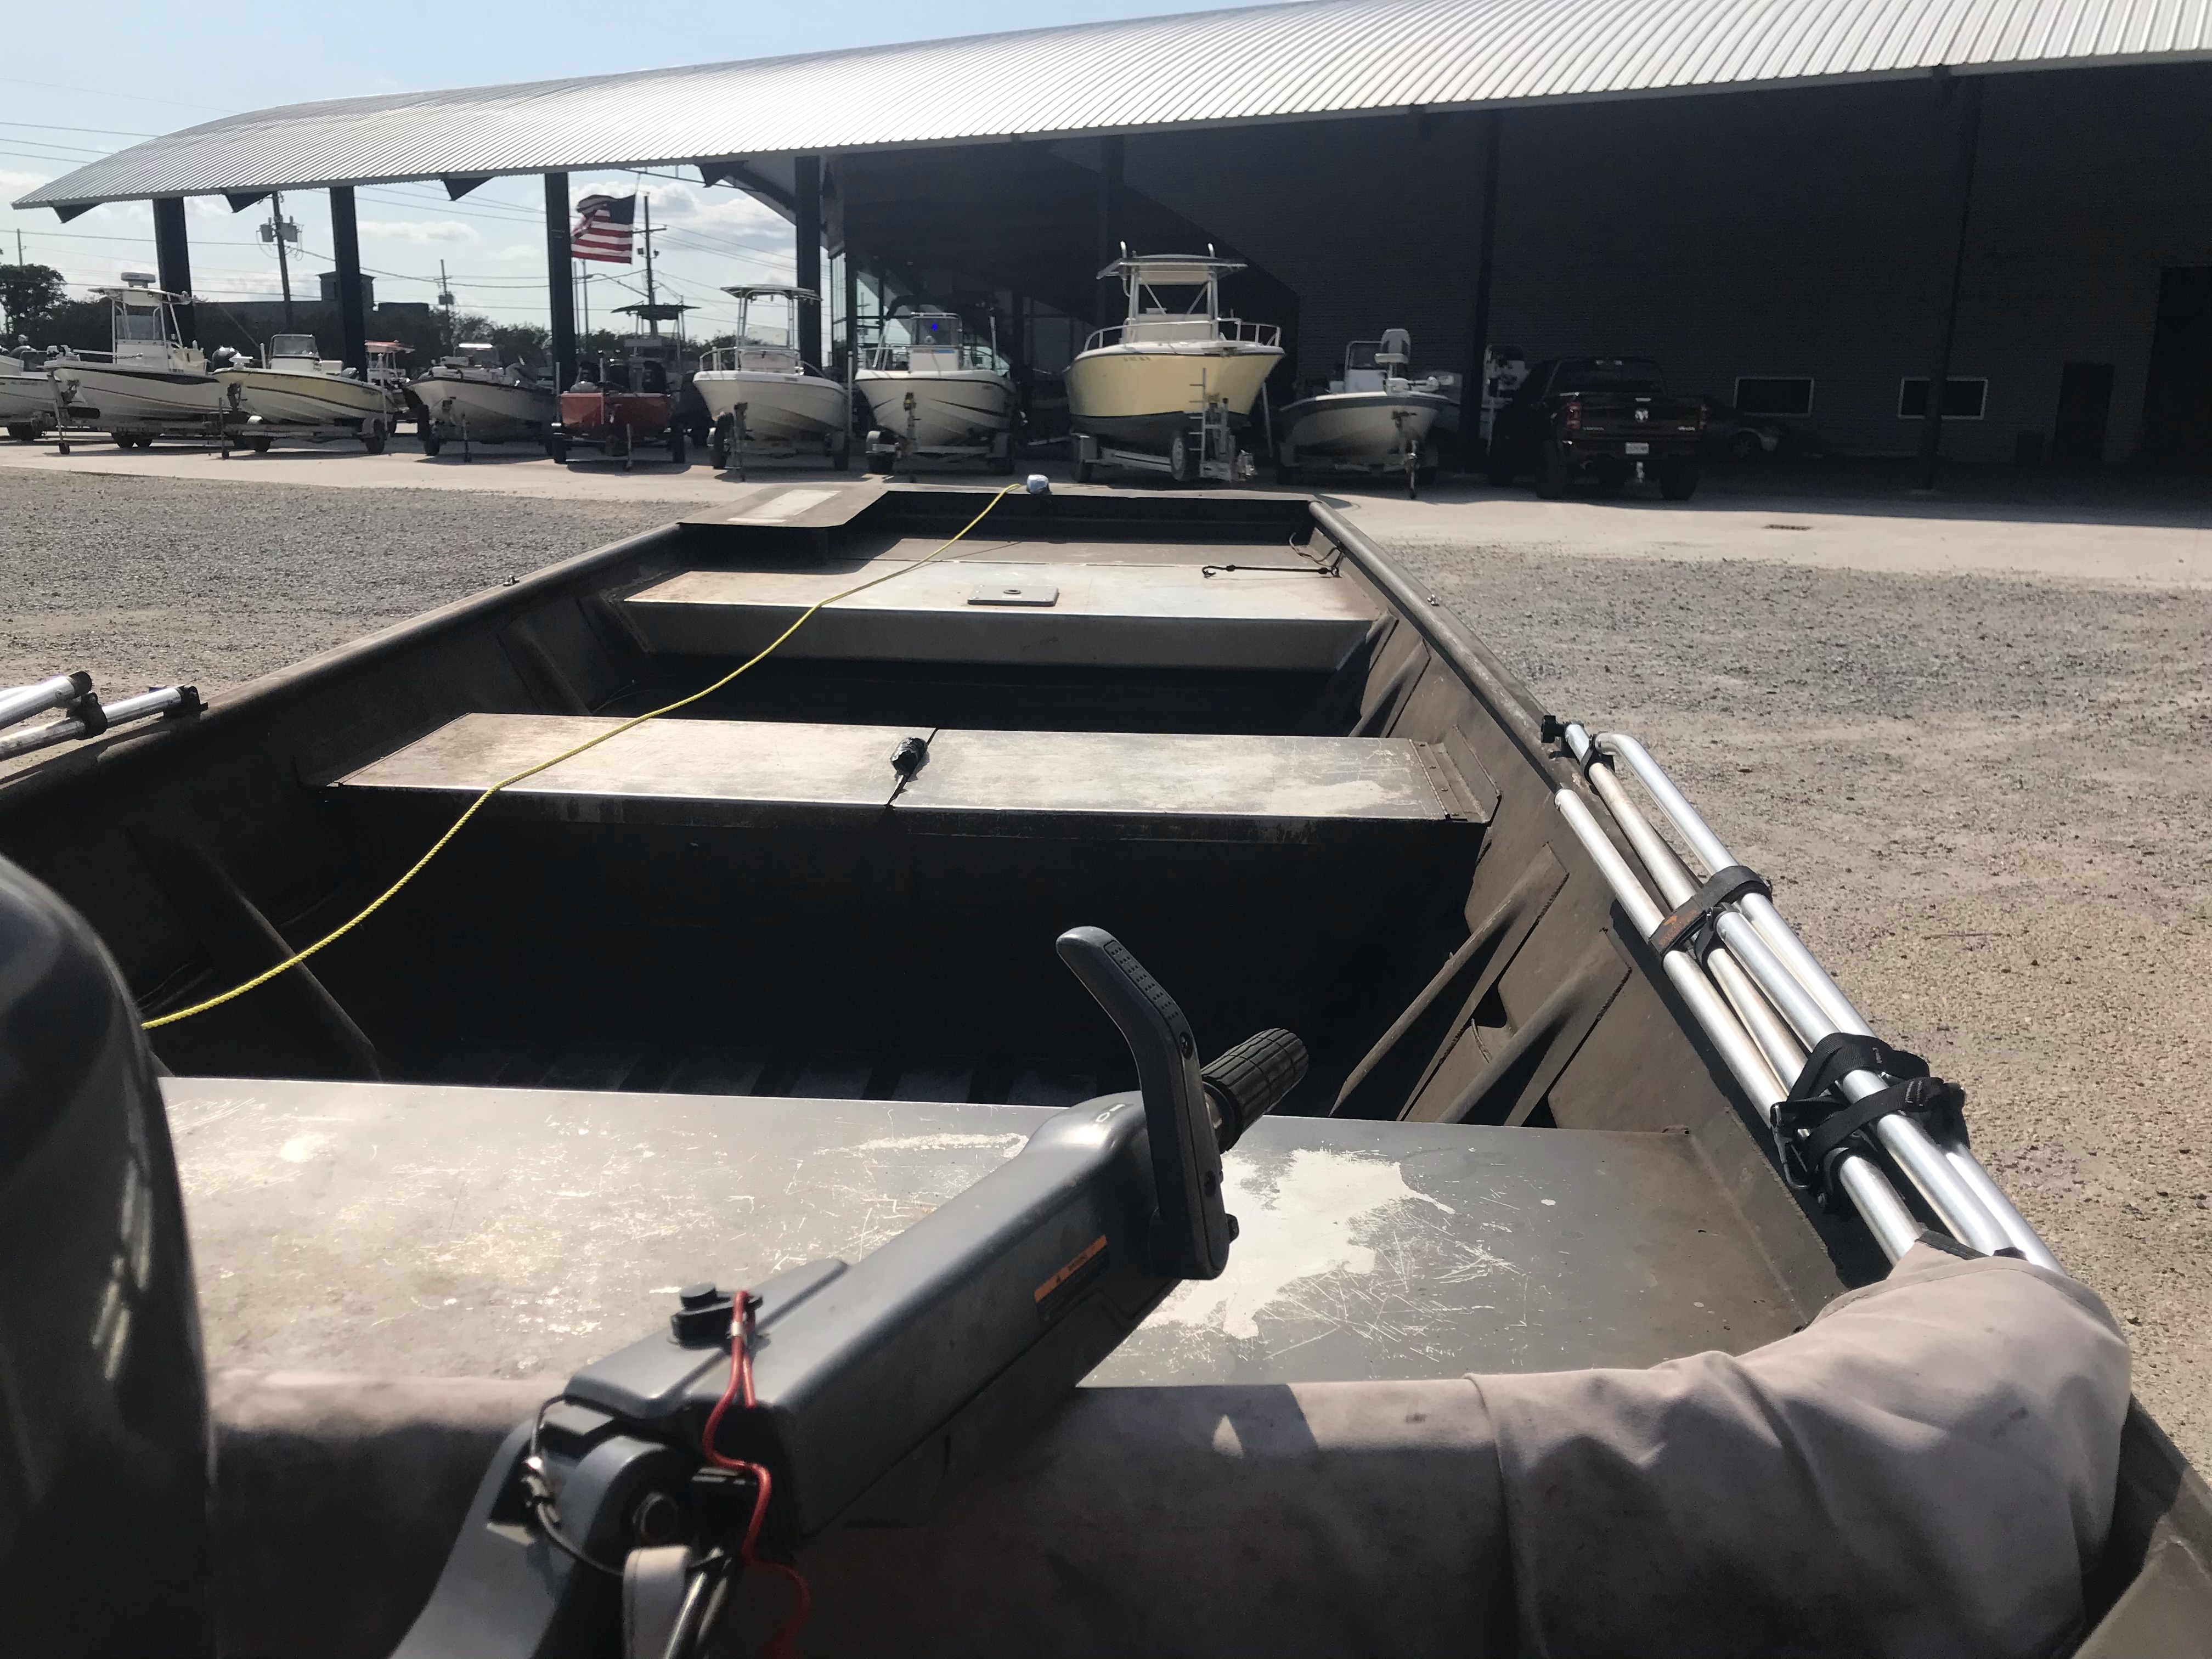 2001 Weld-Craft boat for sale, model of the boat is 14ft & Image # 3 of 7